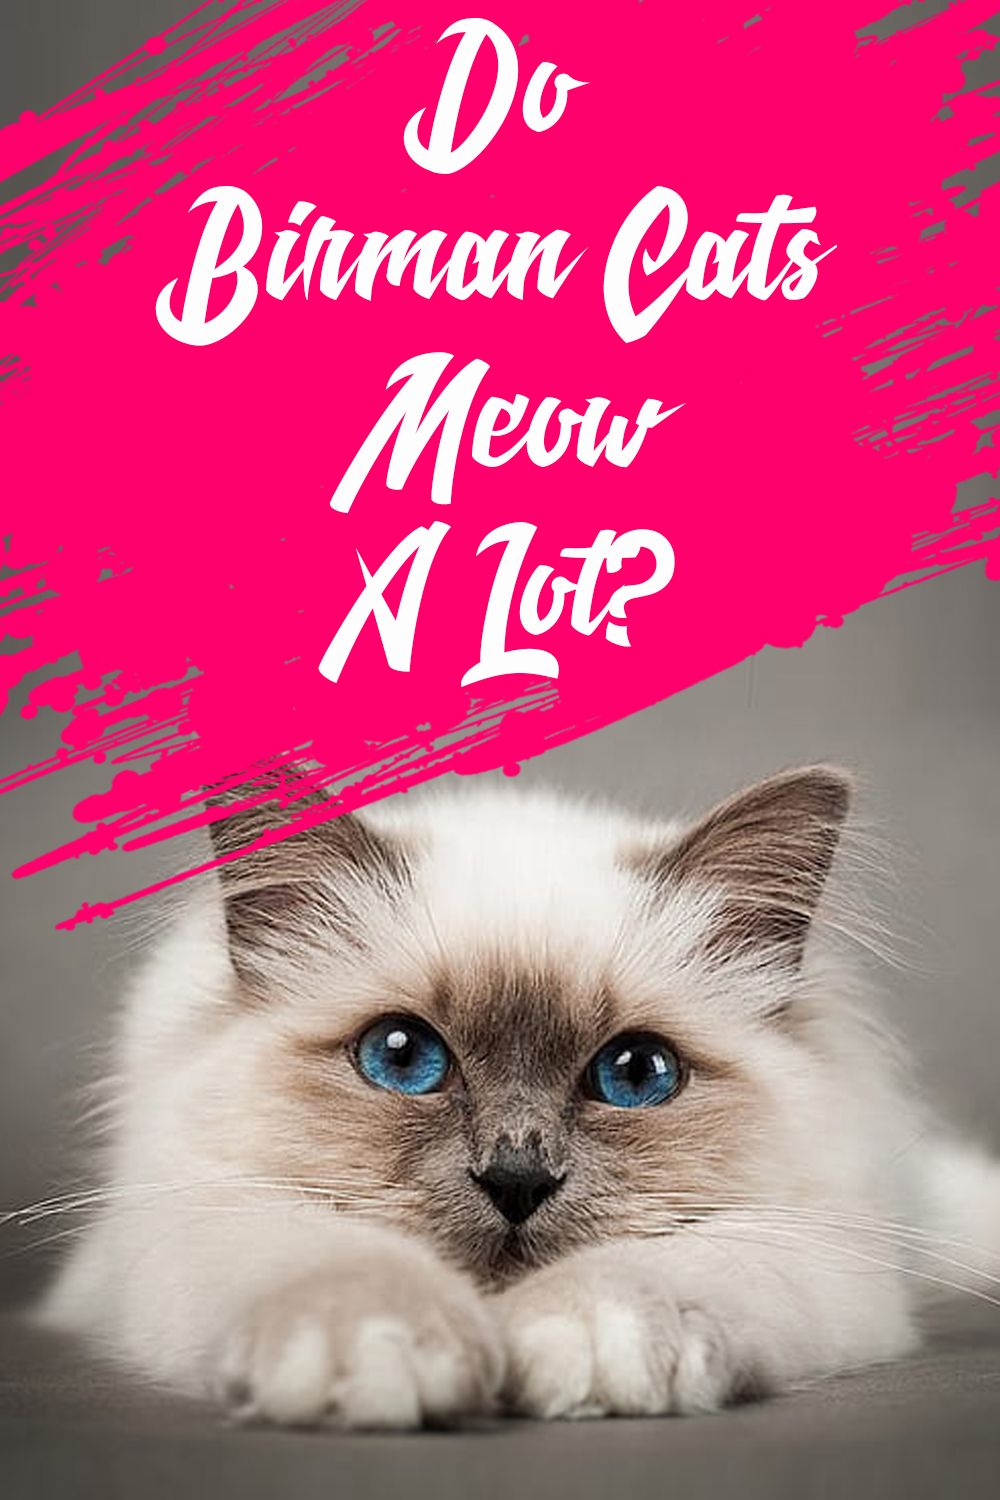 Pin on Birman Cat Lovers and Owners